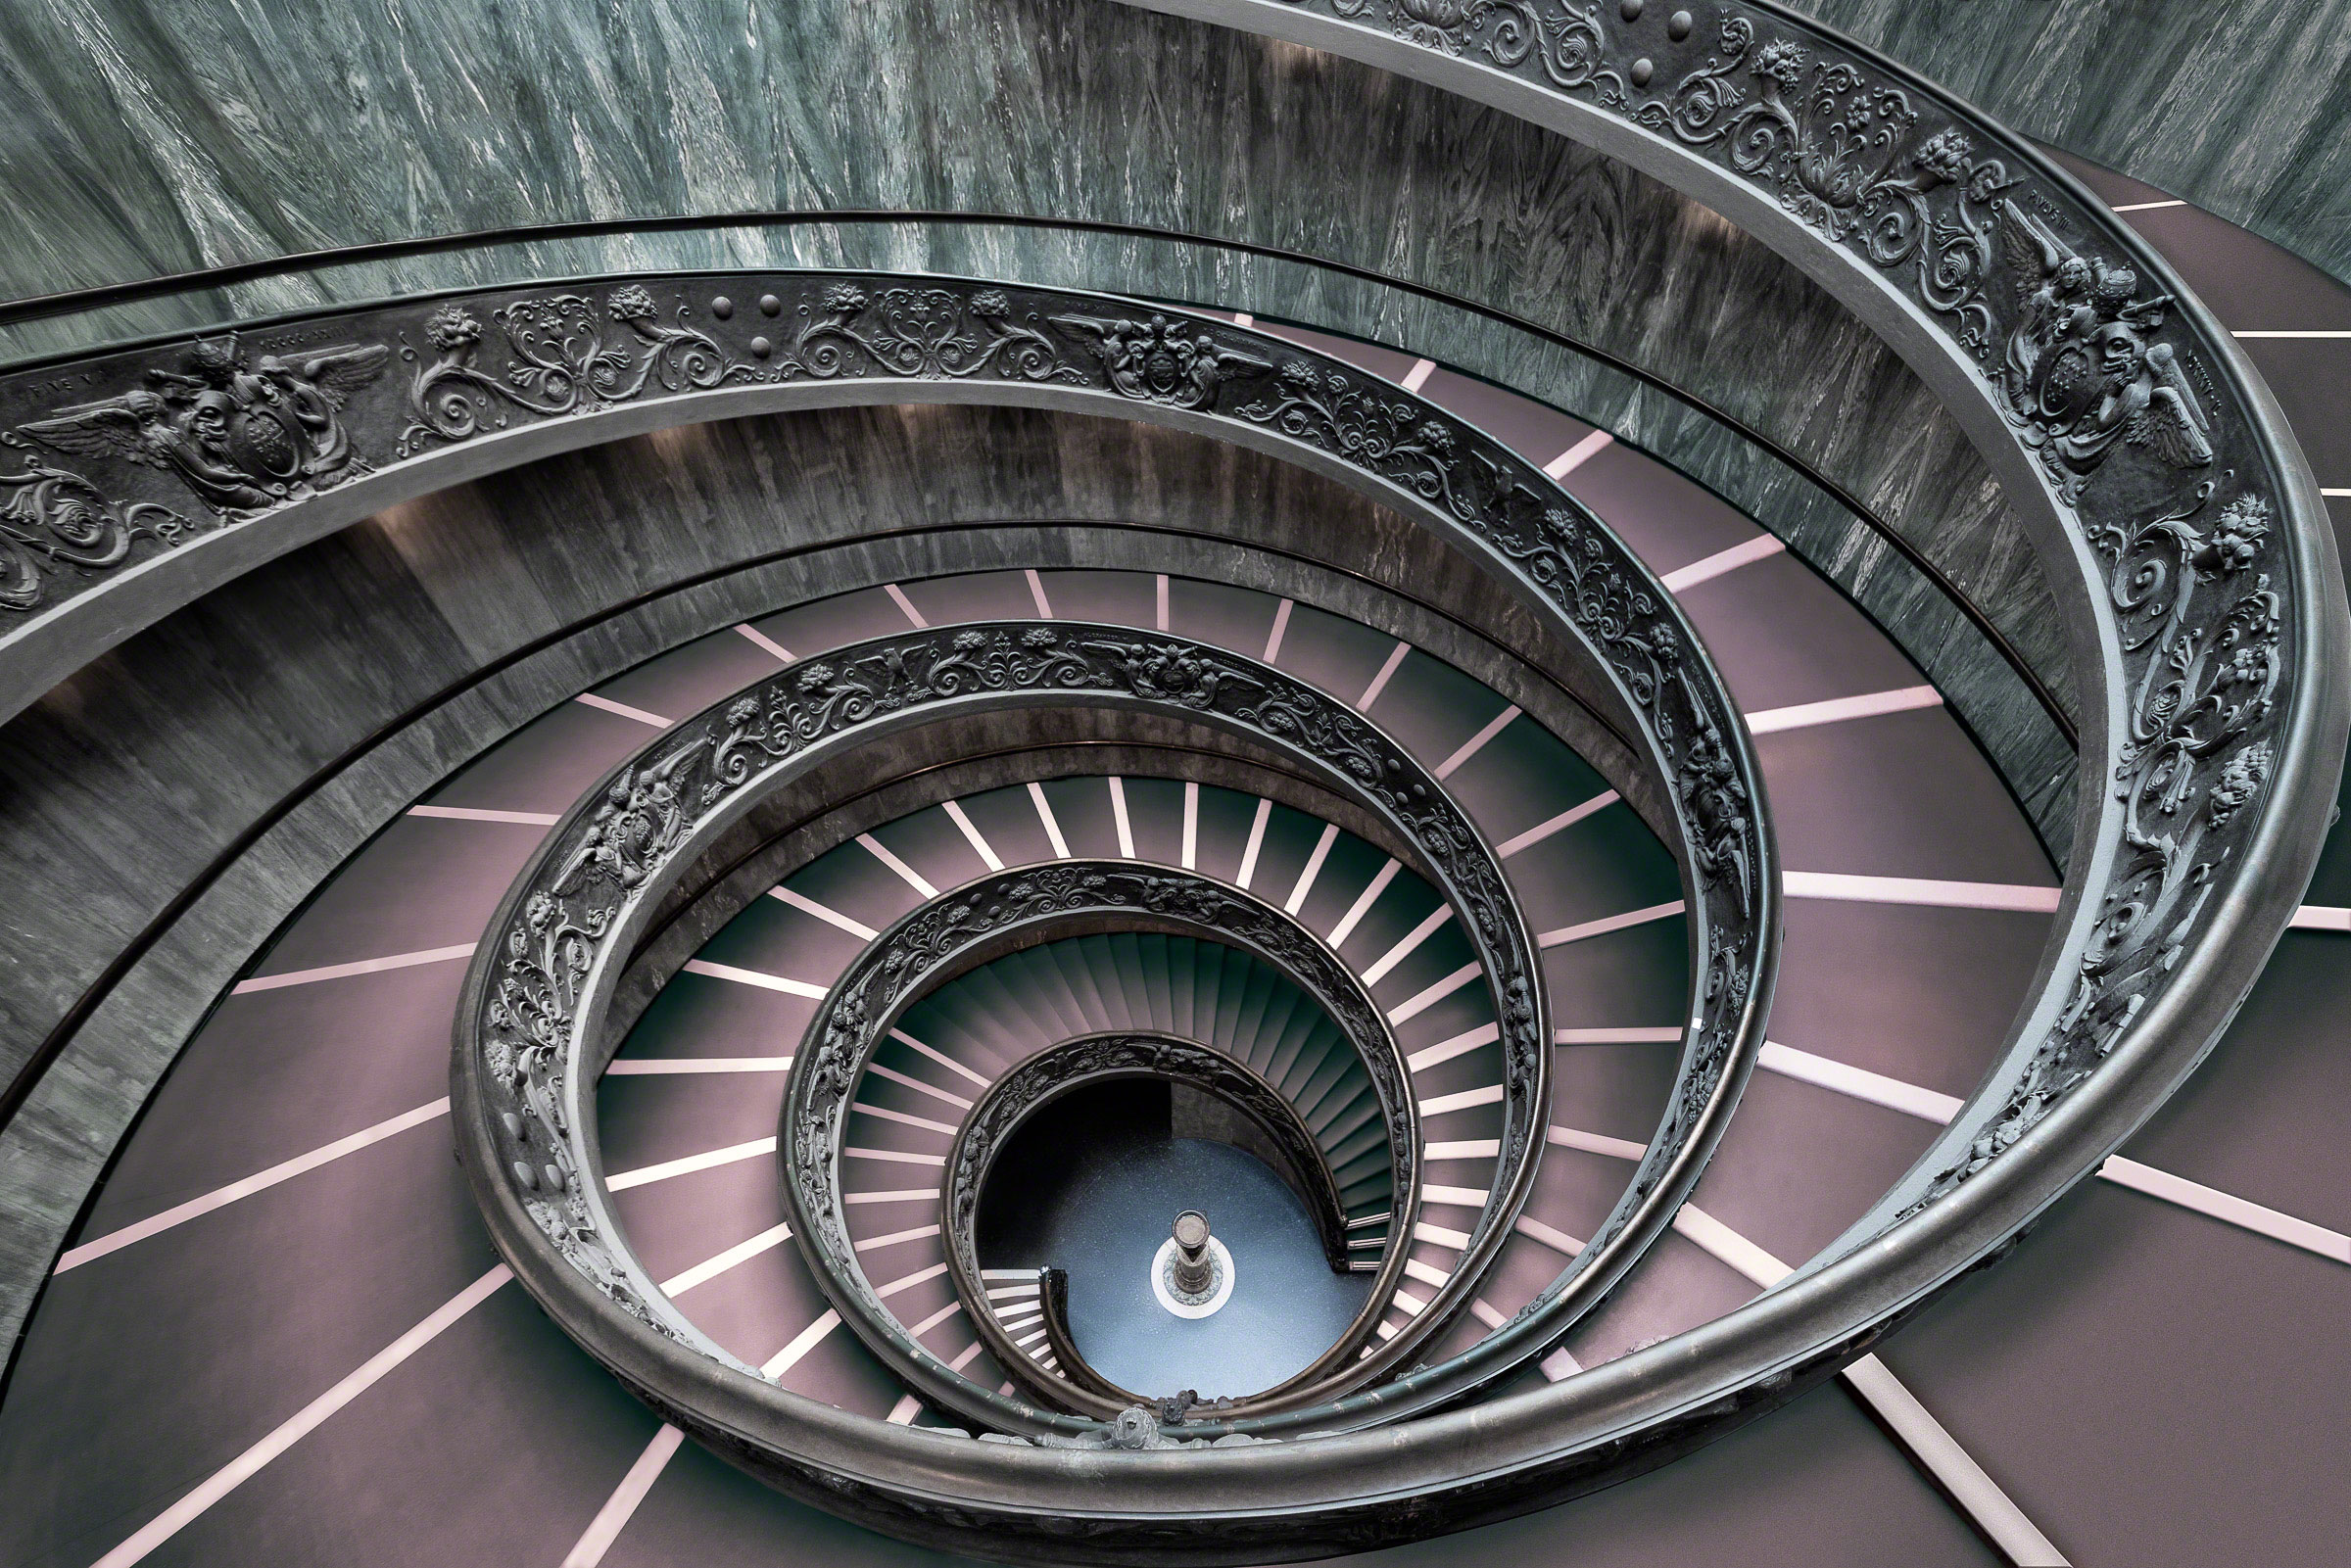 Stairs to Eternity